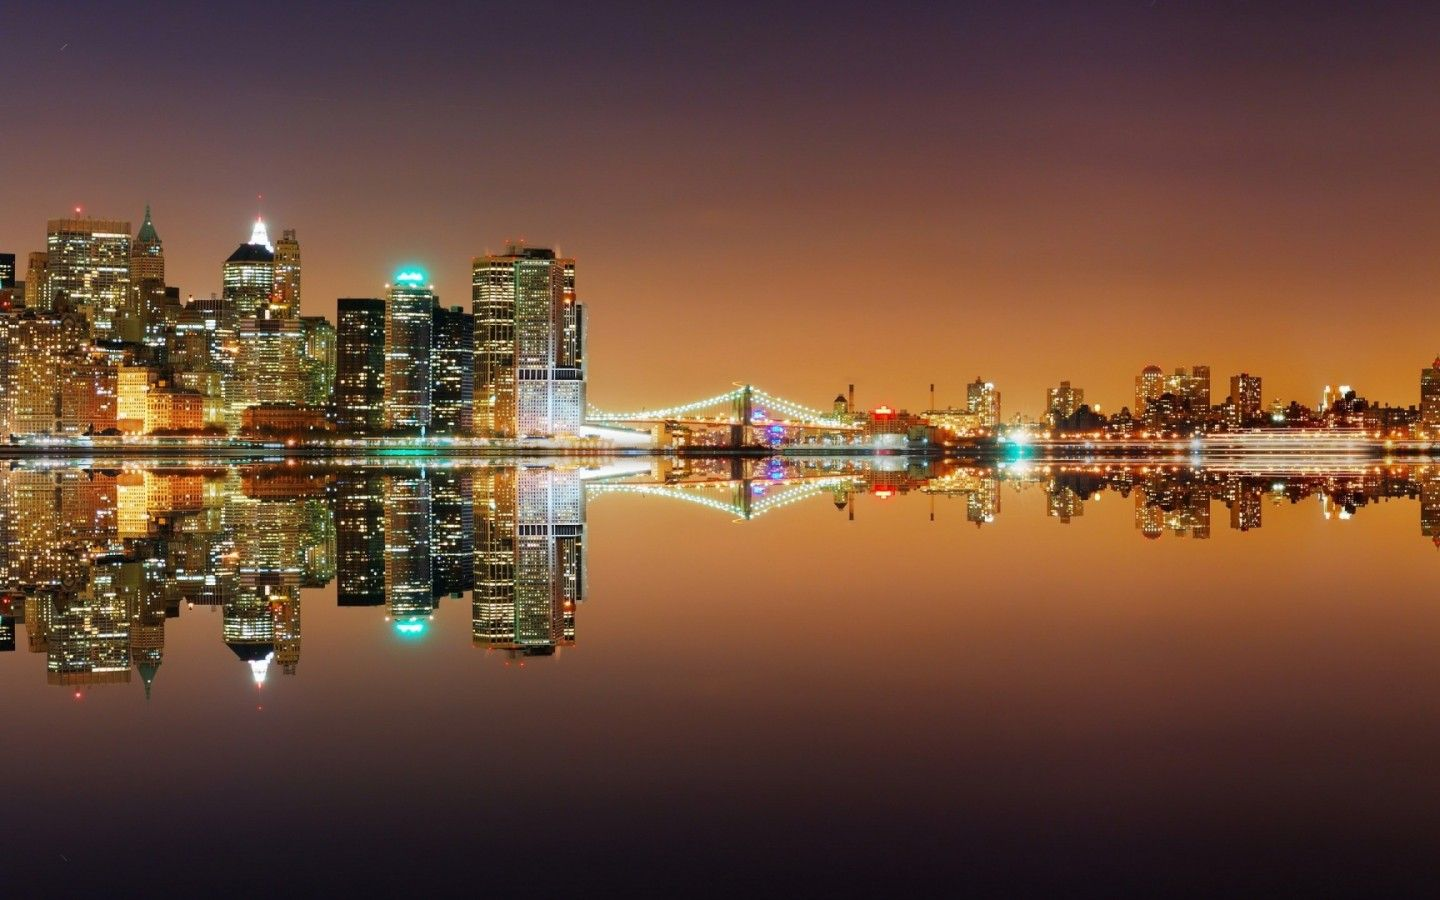 New York City Lights Beautiful Desktop Wallpaper In Fullscreen